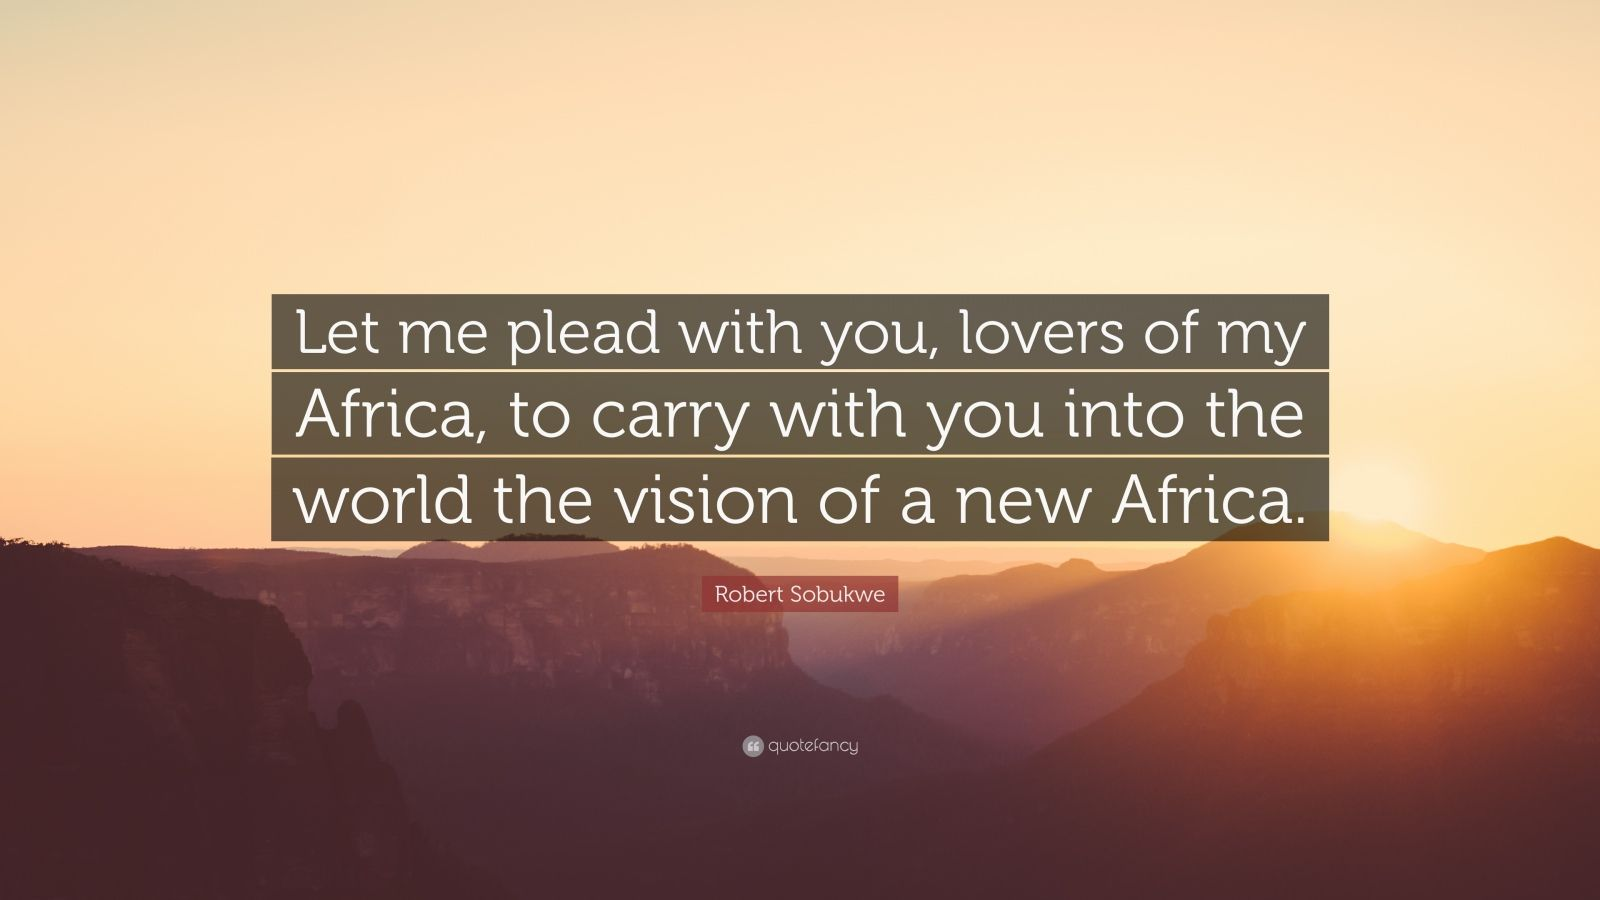 """Robert Sobukwe Quote: """"Let me plead with you, lovers of my Africa, to carry with you into the world the vision of a new Africa."""""""